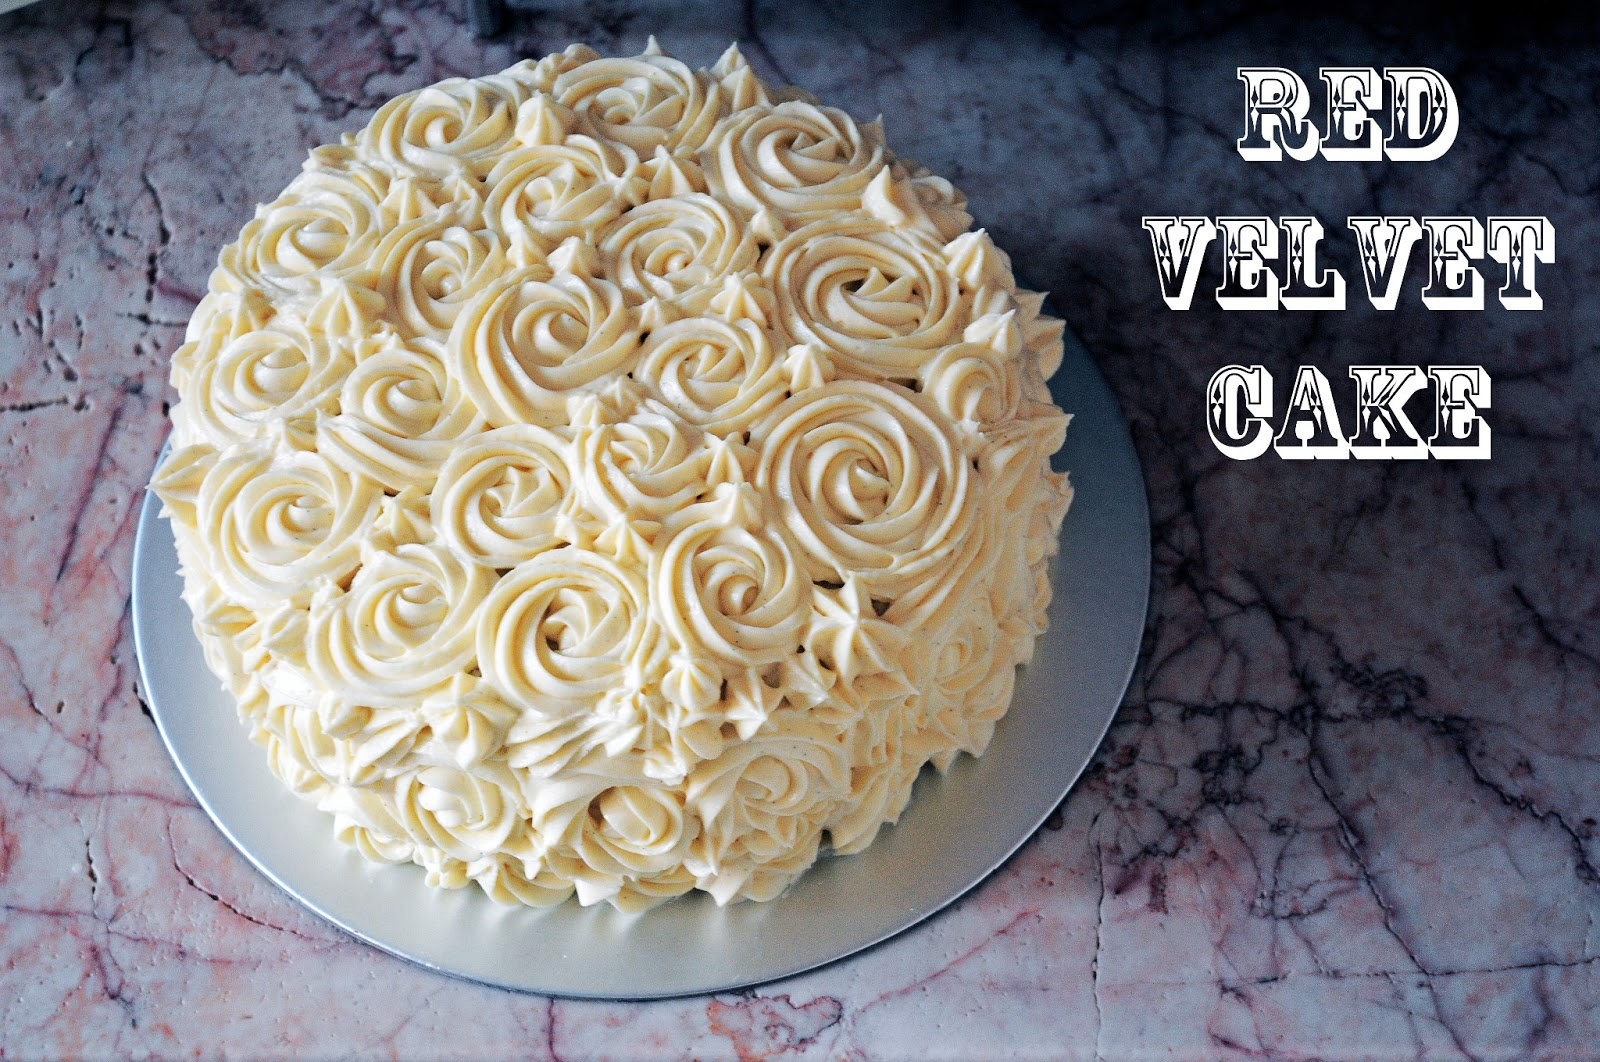 Red Velvet Cake With Rosette Cream Cheese Frosting Forget Those